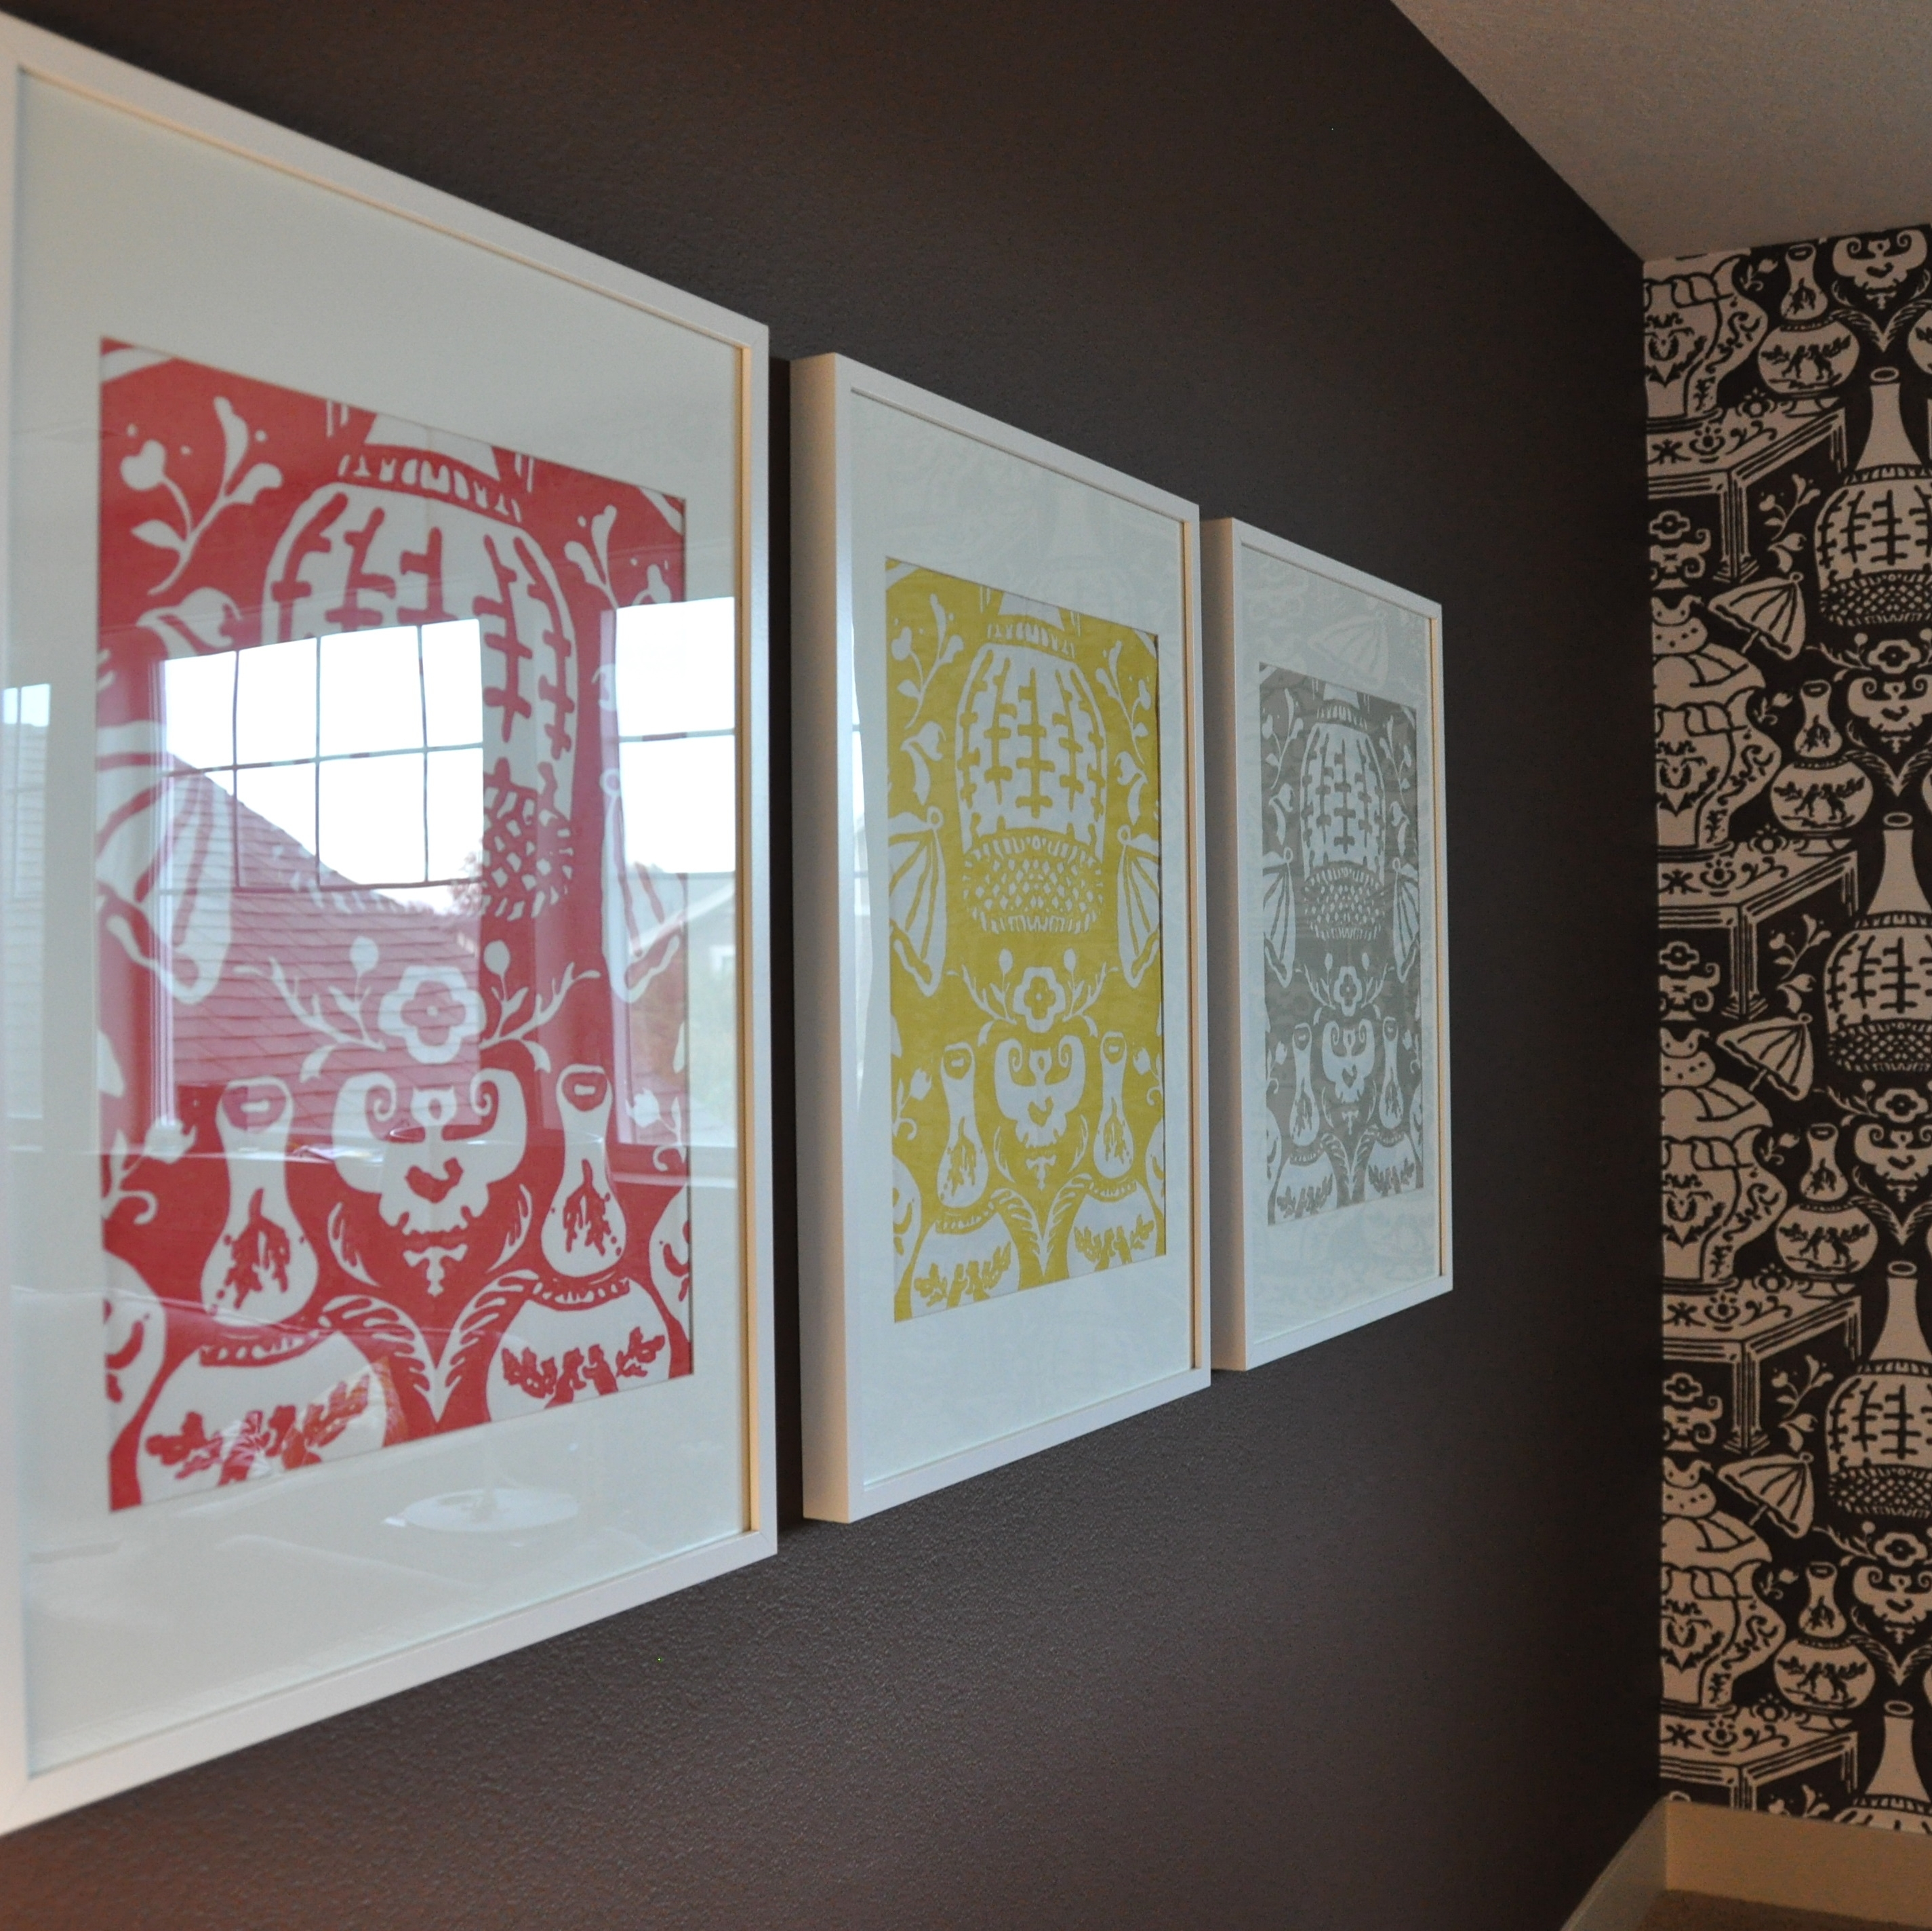 Wallpaper Samples In Ikea Ribba Frames = Simple & Fun Art! | Great Within Most Up To Date Fabric Decoupage Wall Art (View 15 of 15)